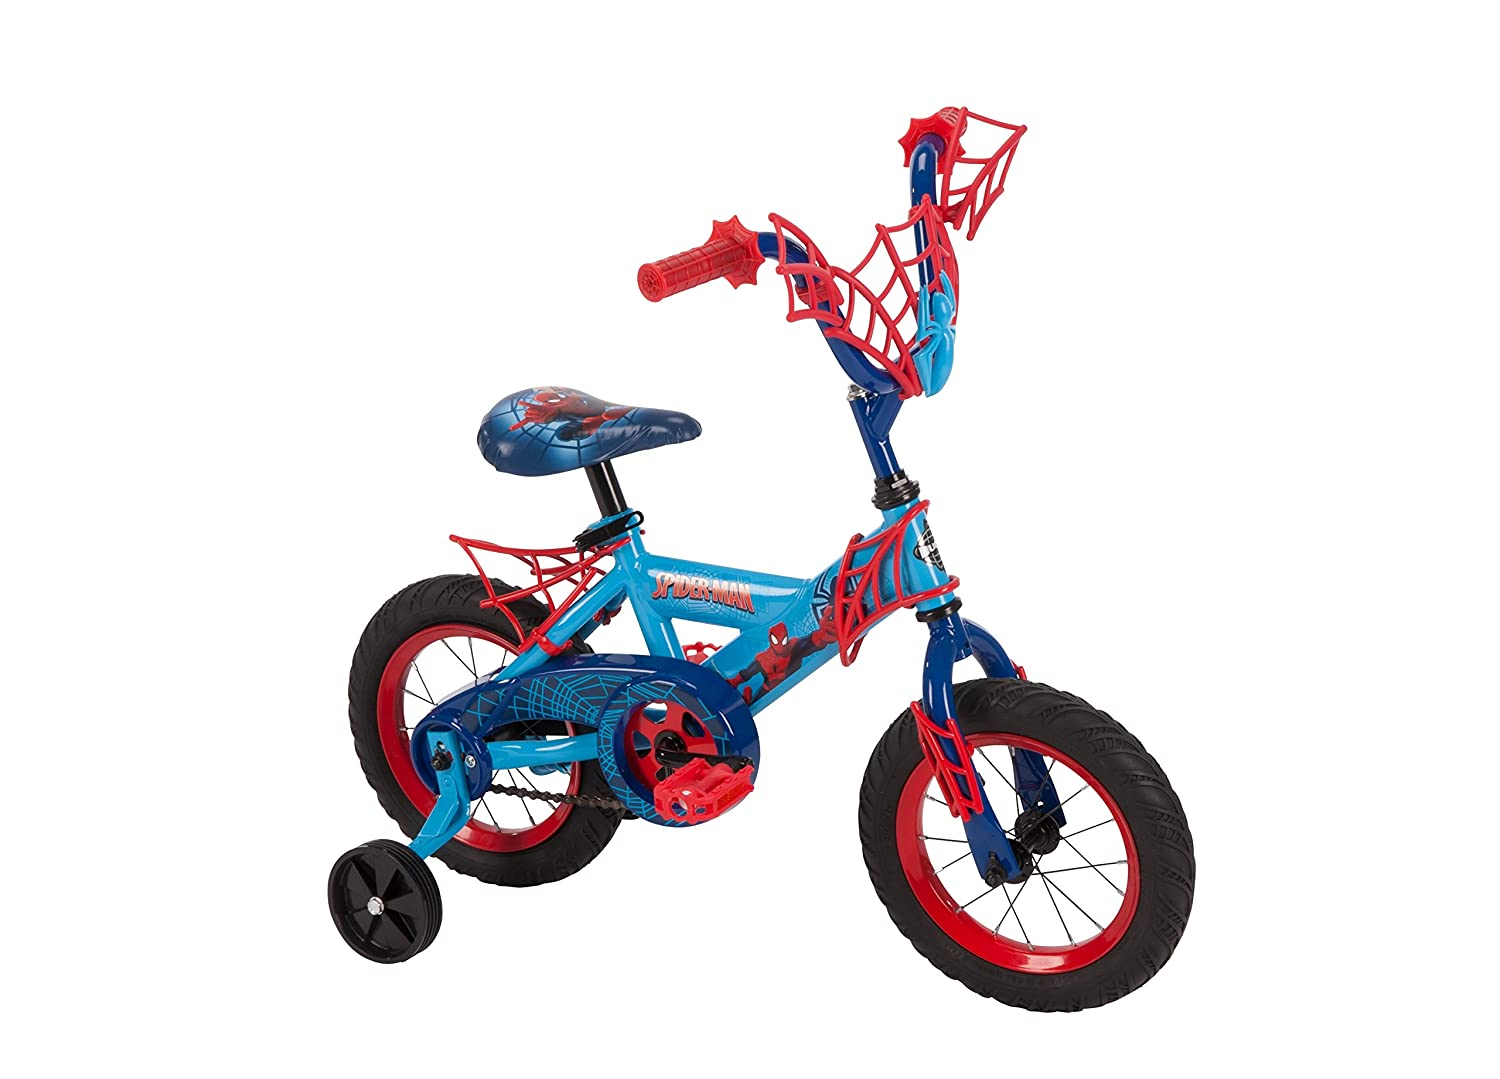 Huffy 12 Marvel Spider-Man Boys Bike The Huffy Bicycle Company 22988